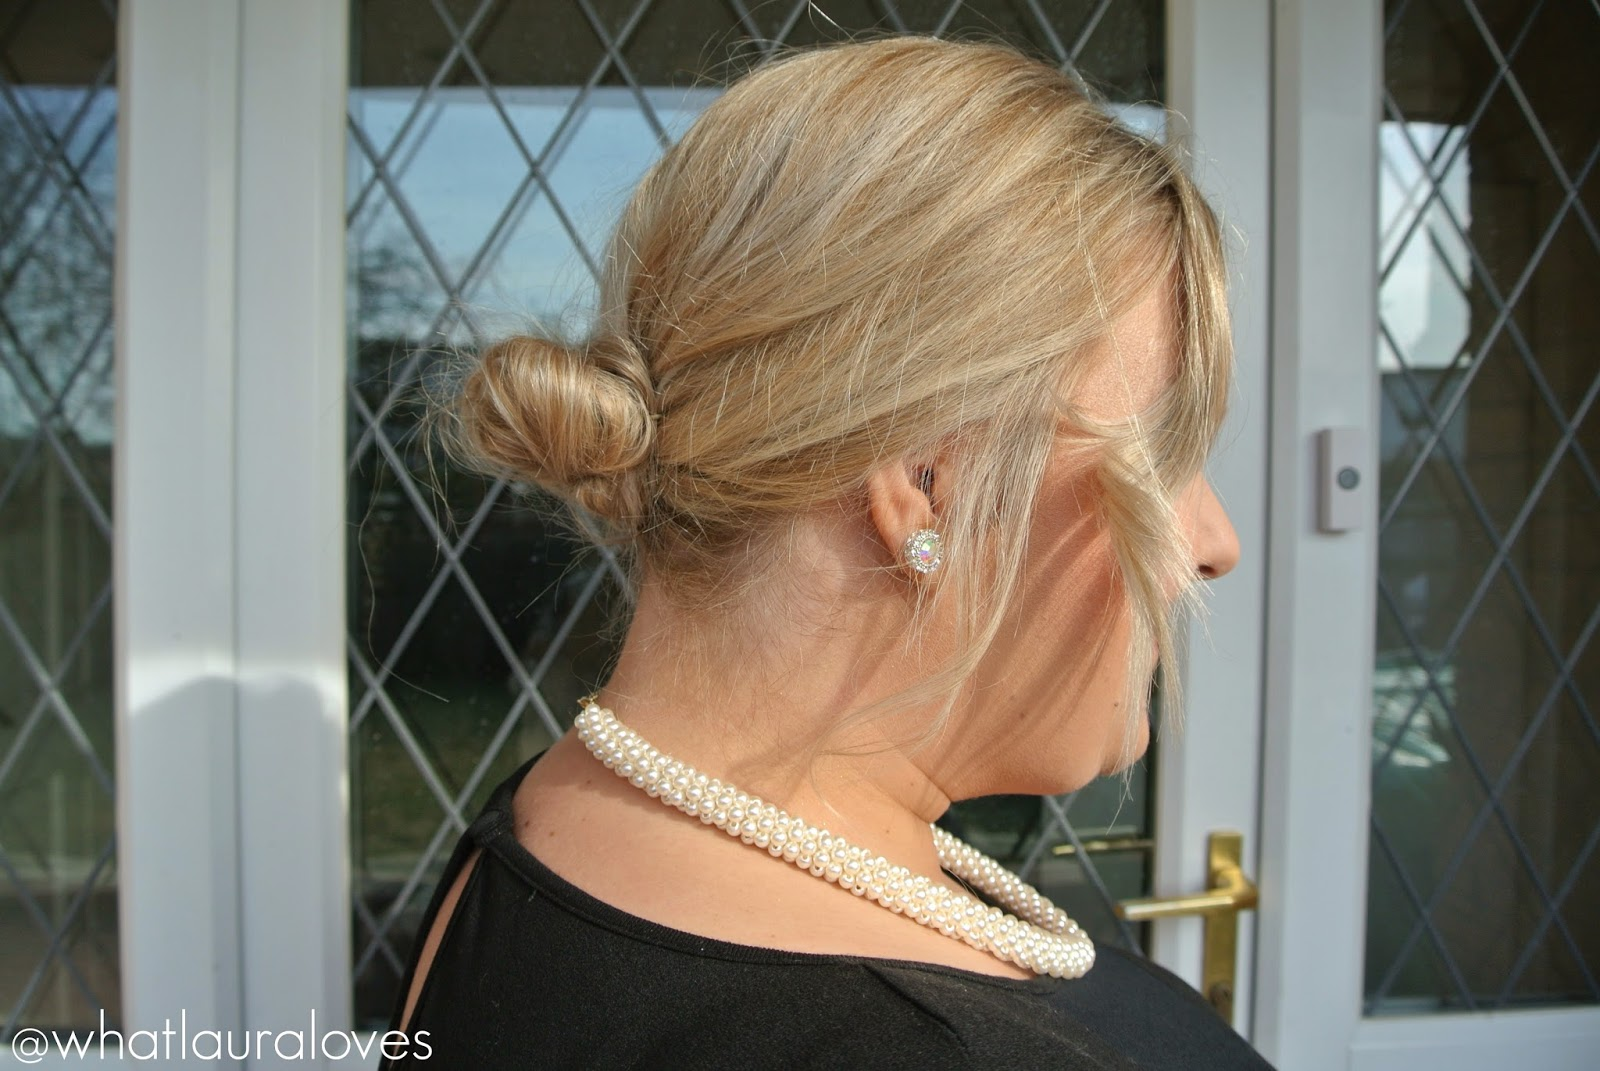 Quick & Easy Messy Up Do Using Fudge Urban Hair Products Fudge Iced Coconut Cocktail Hairspray Fudge Powder Styler